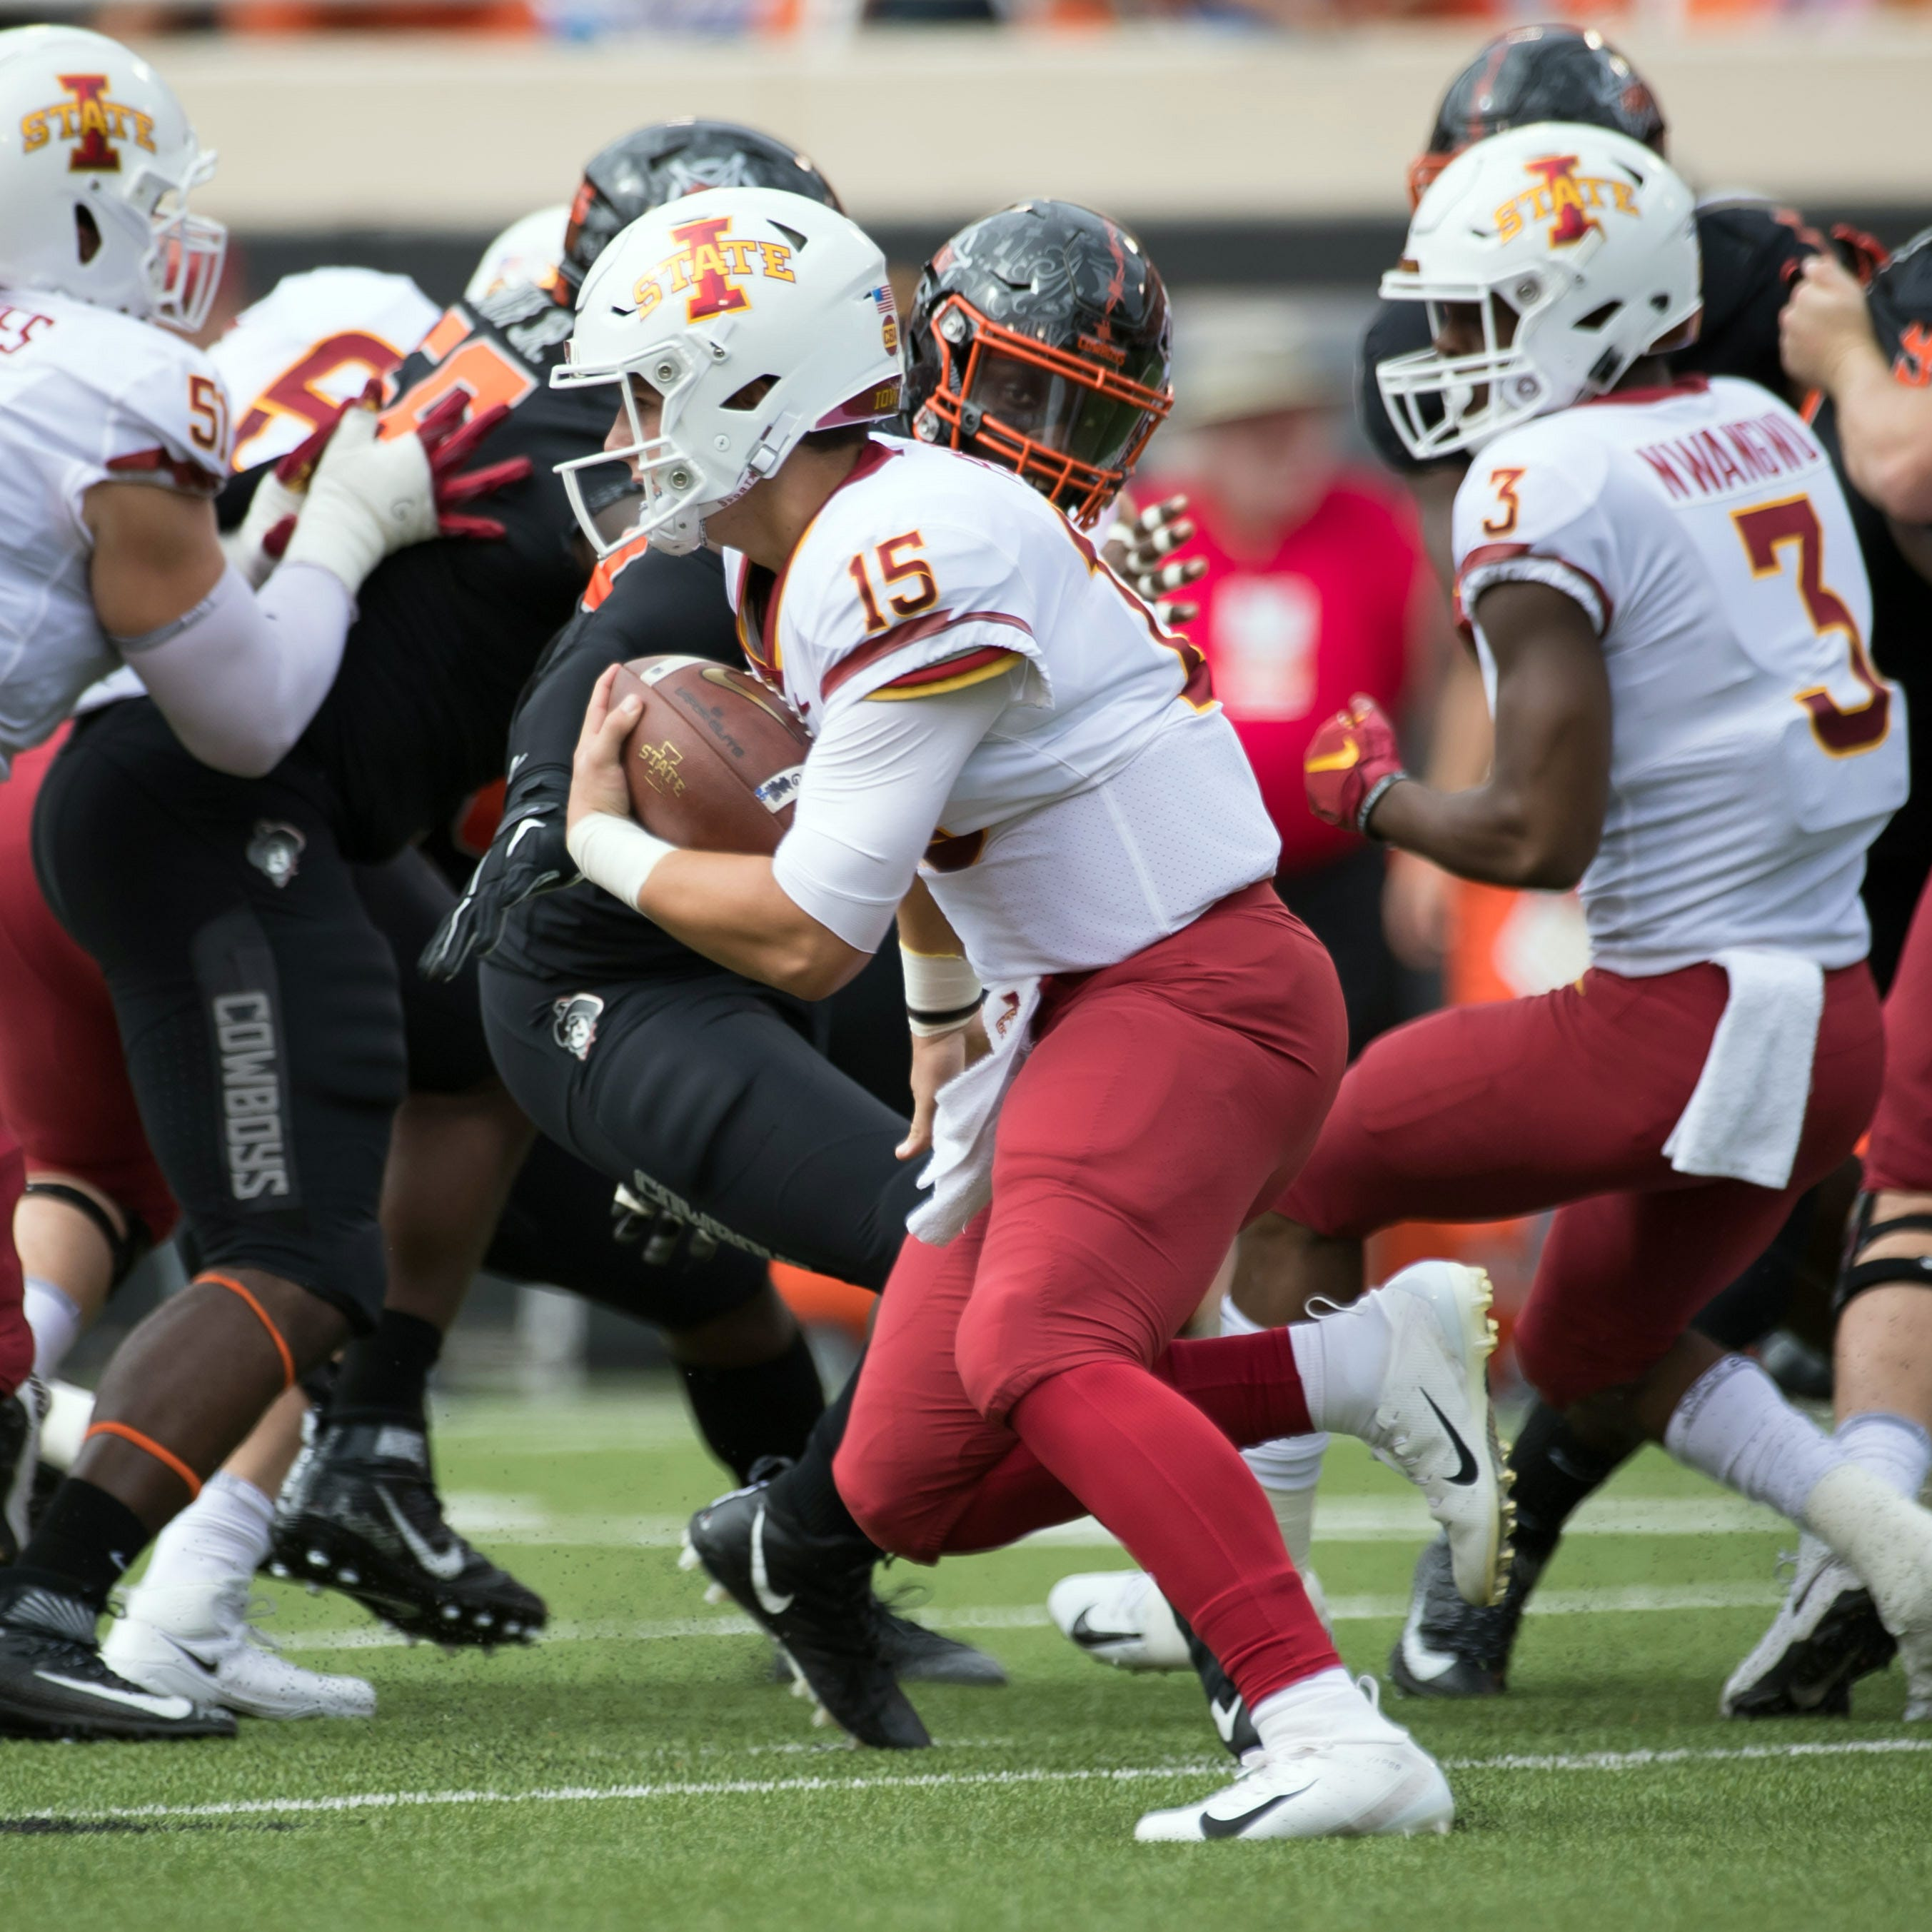 Peterson: Purdy opens up Iowa State's offense like it hasn't been opened since the early 2000s